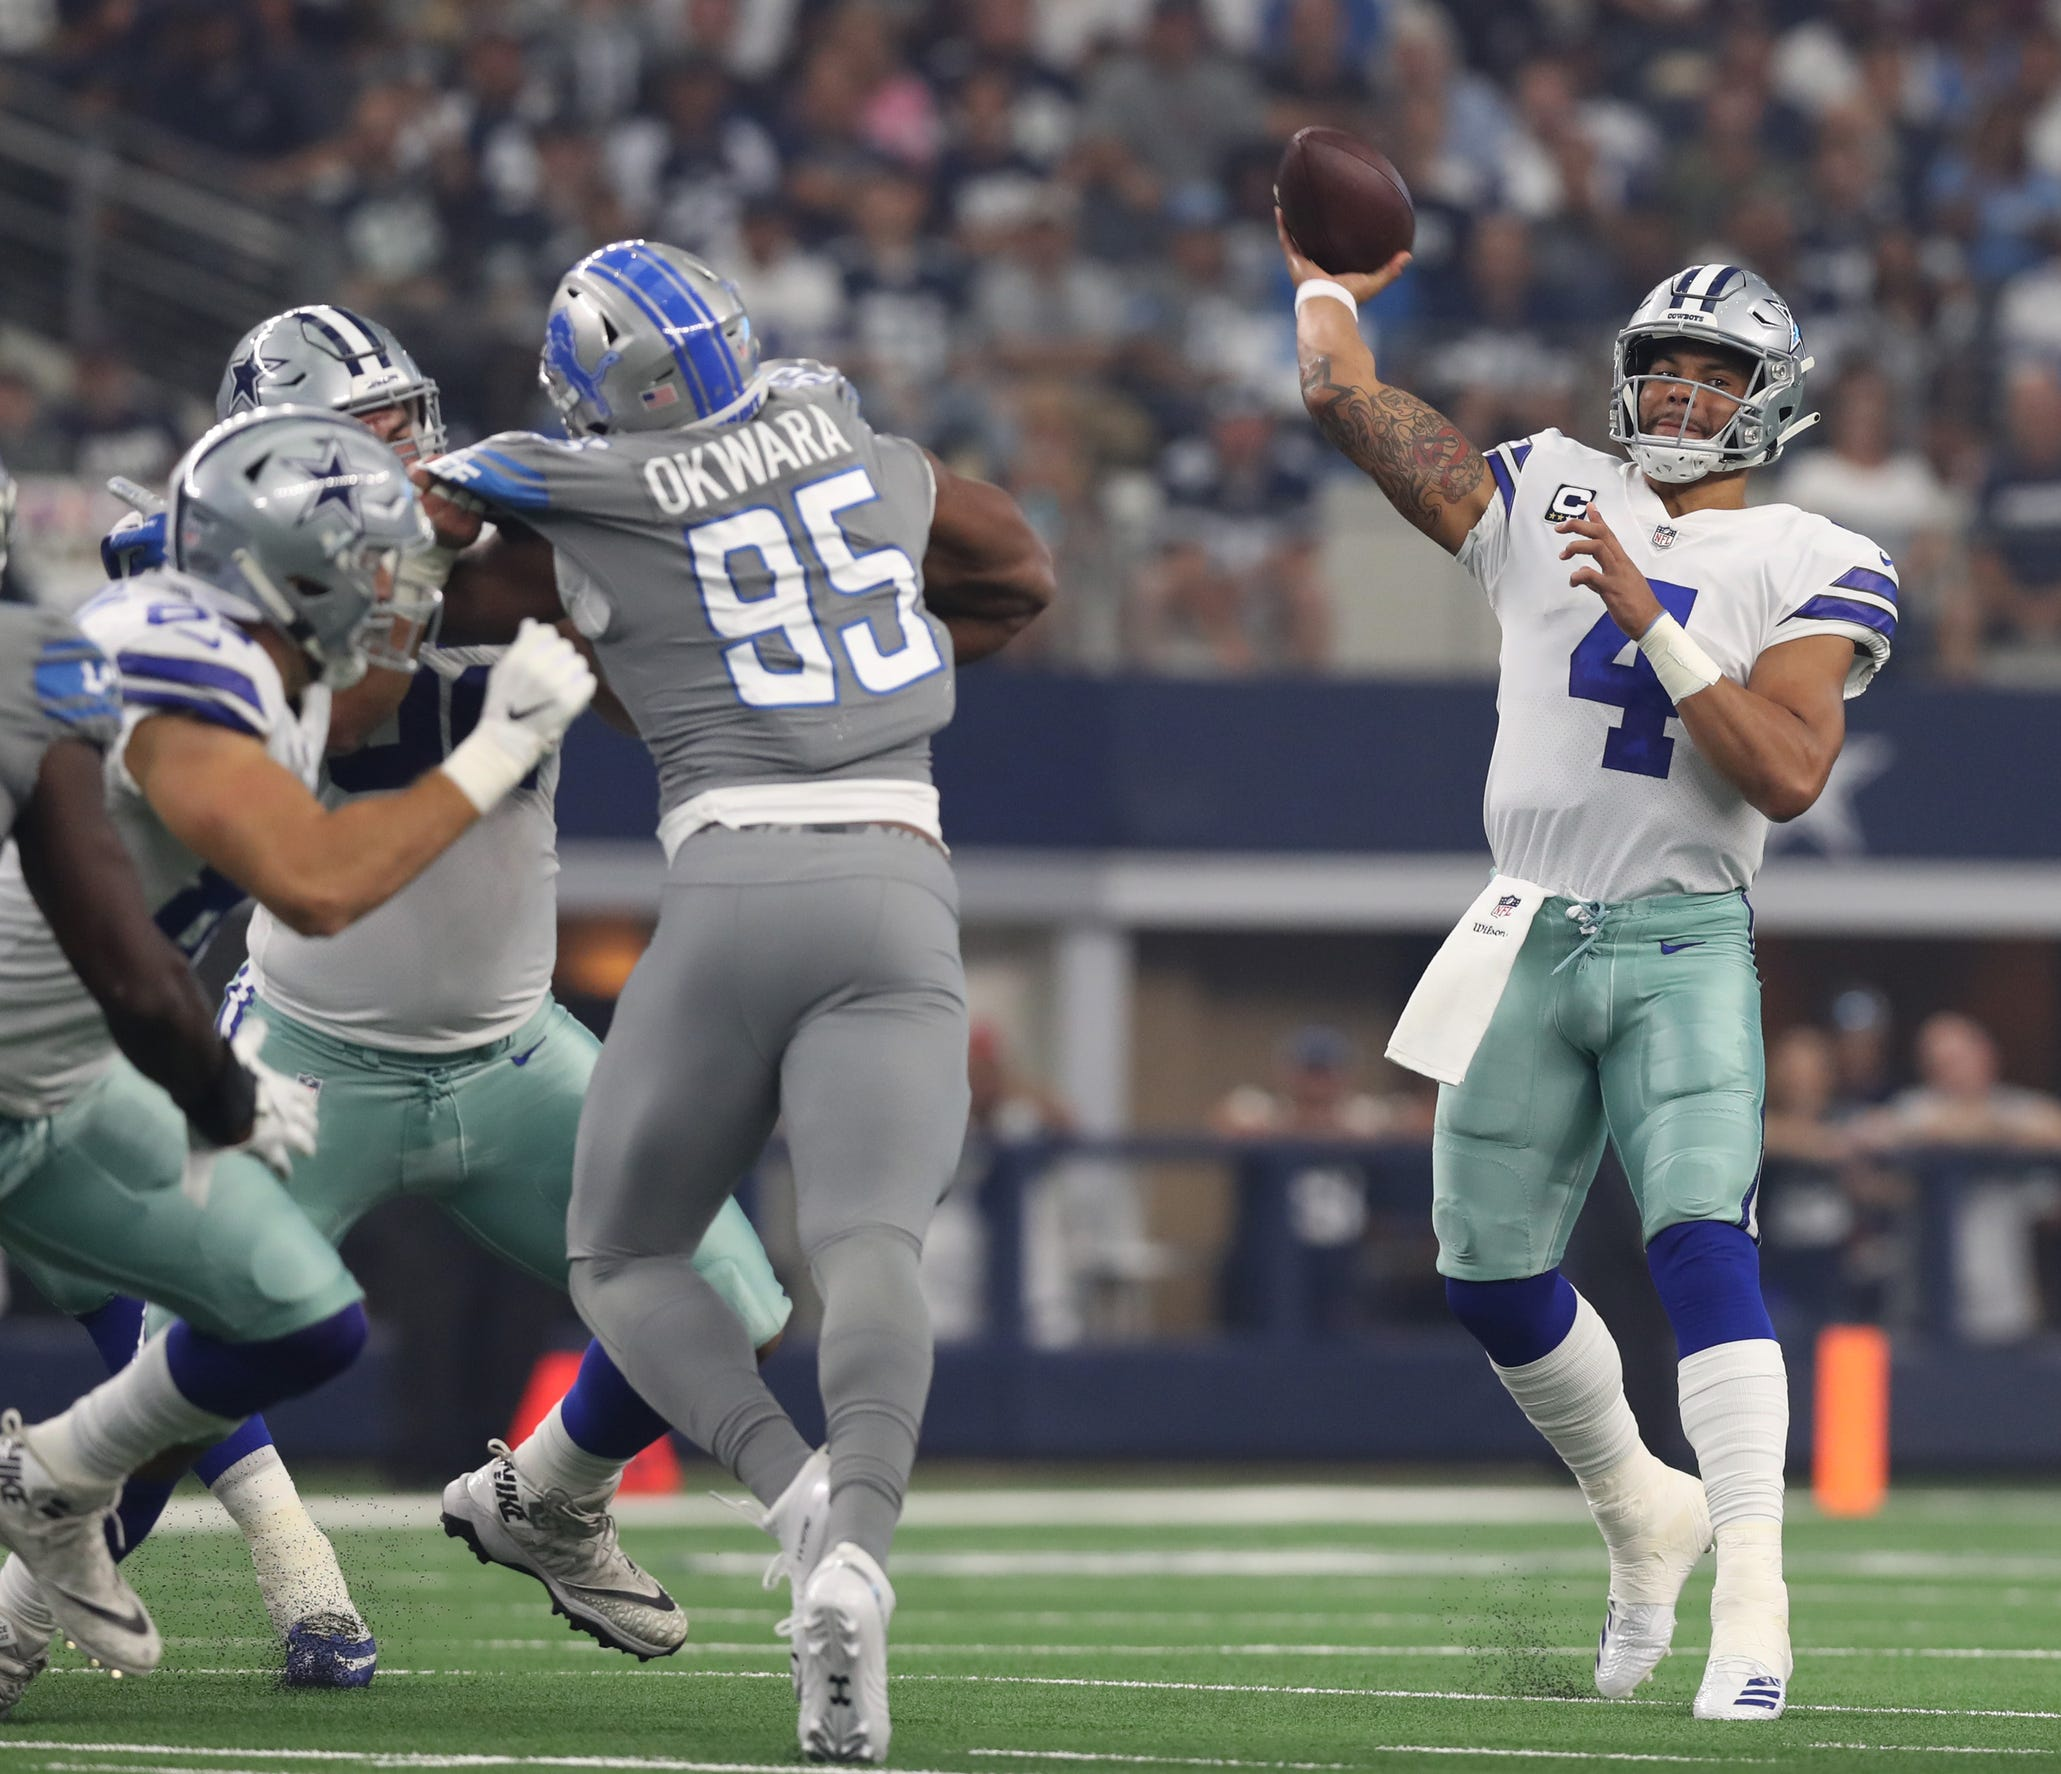 Nfl Detroit Lions At Dallas Cowboys